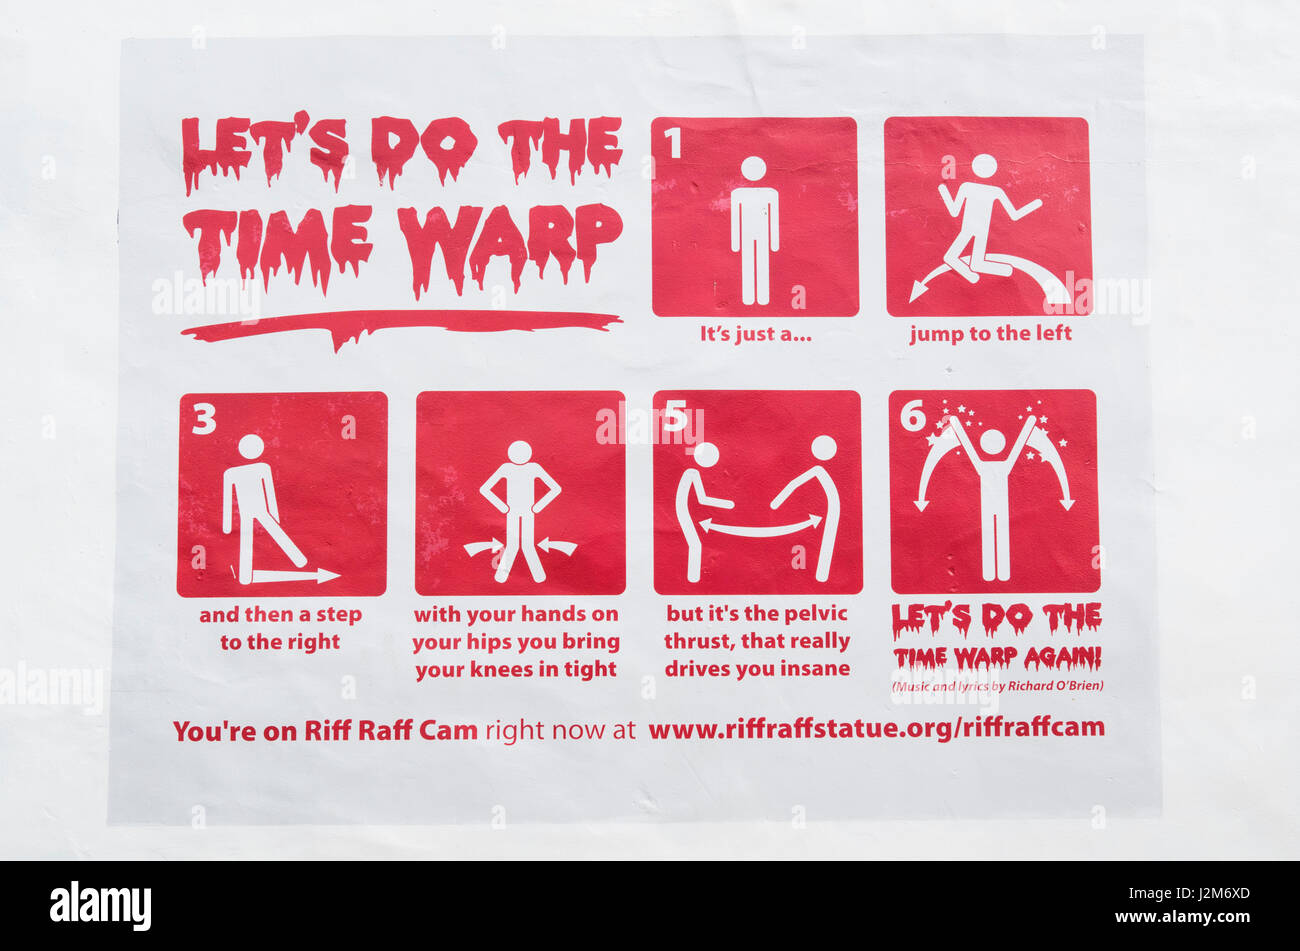 New Zealand, North Island, Hamilton, dance step instructions for Lets do The Time Warp dance, monument to Rocky - Stock Image